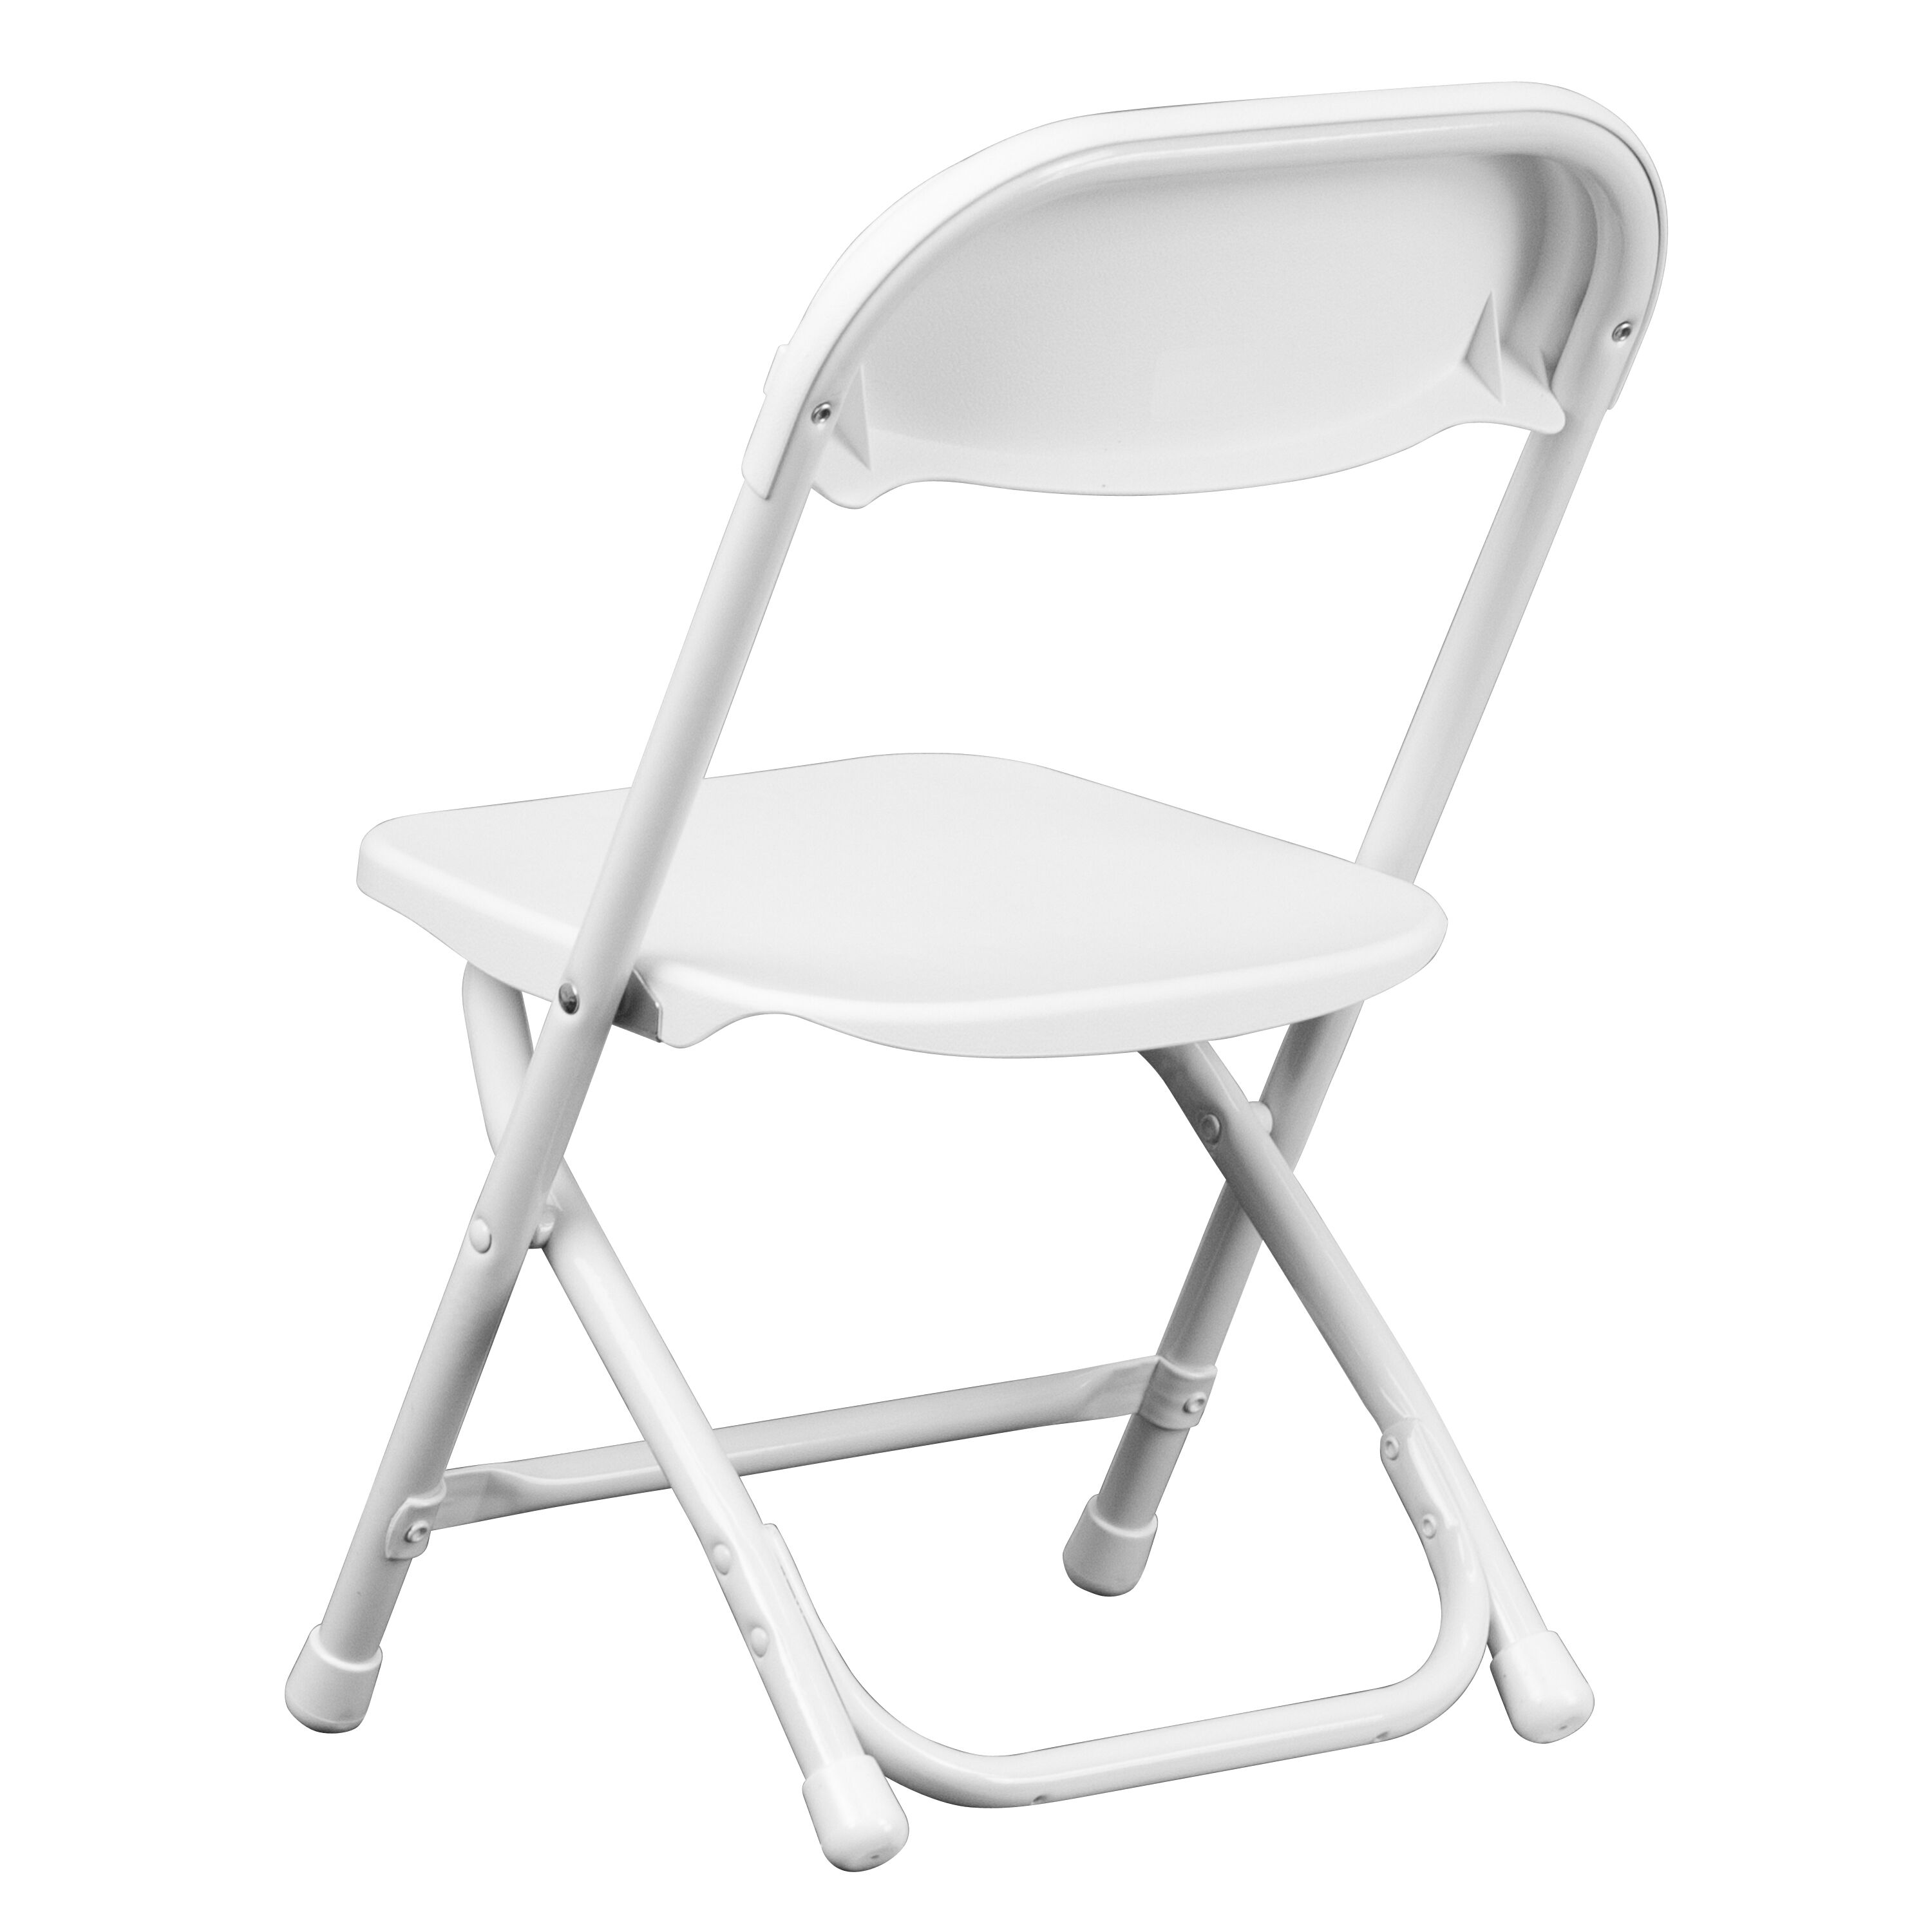 Delicieux Our Kids White Plastic Folding Chair Is On Sale Now.